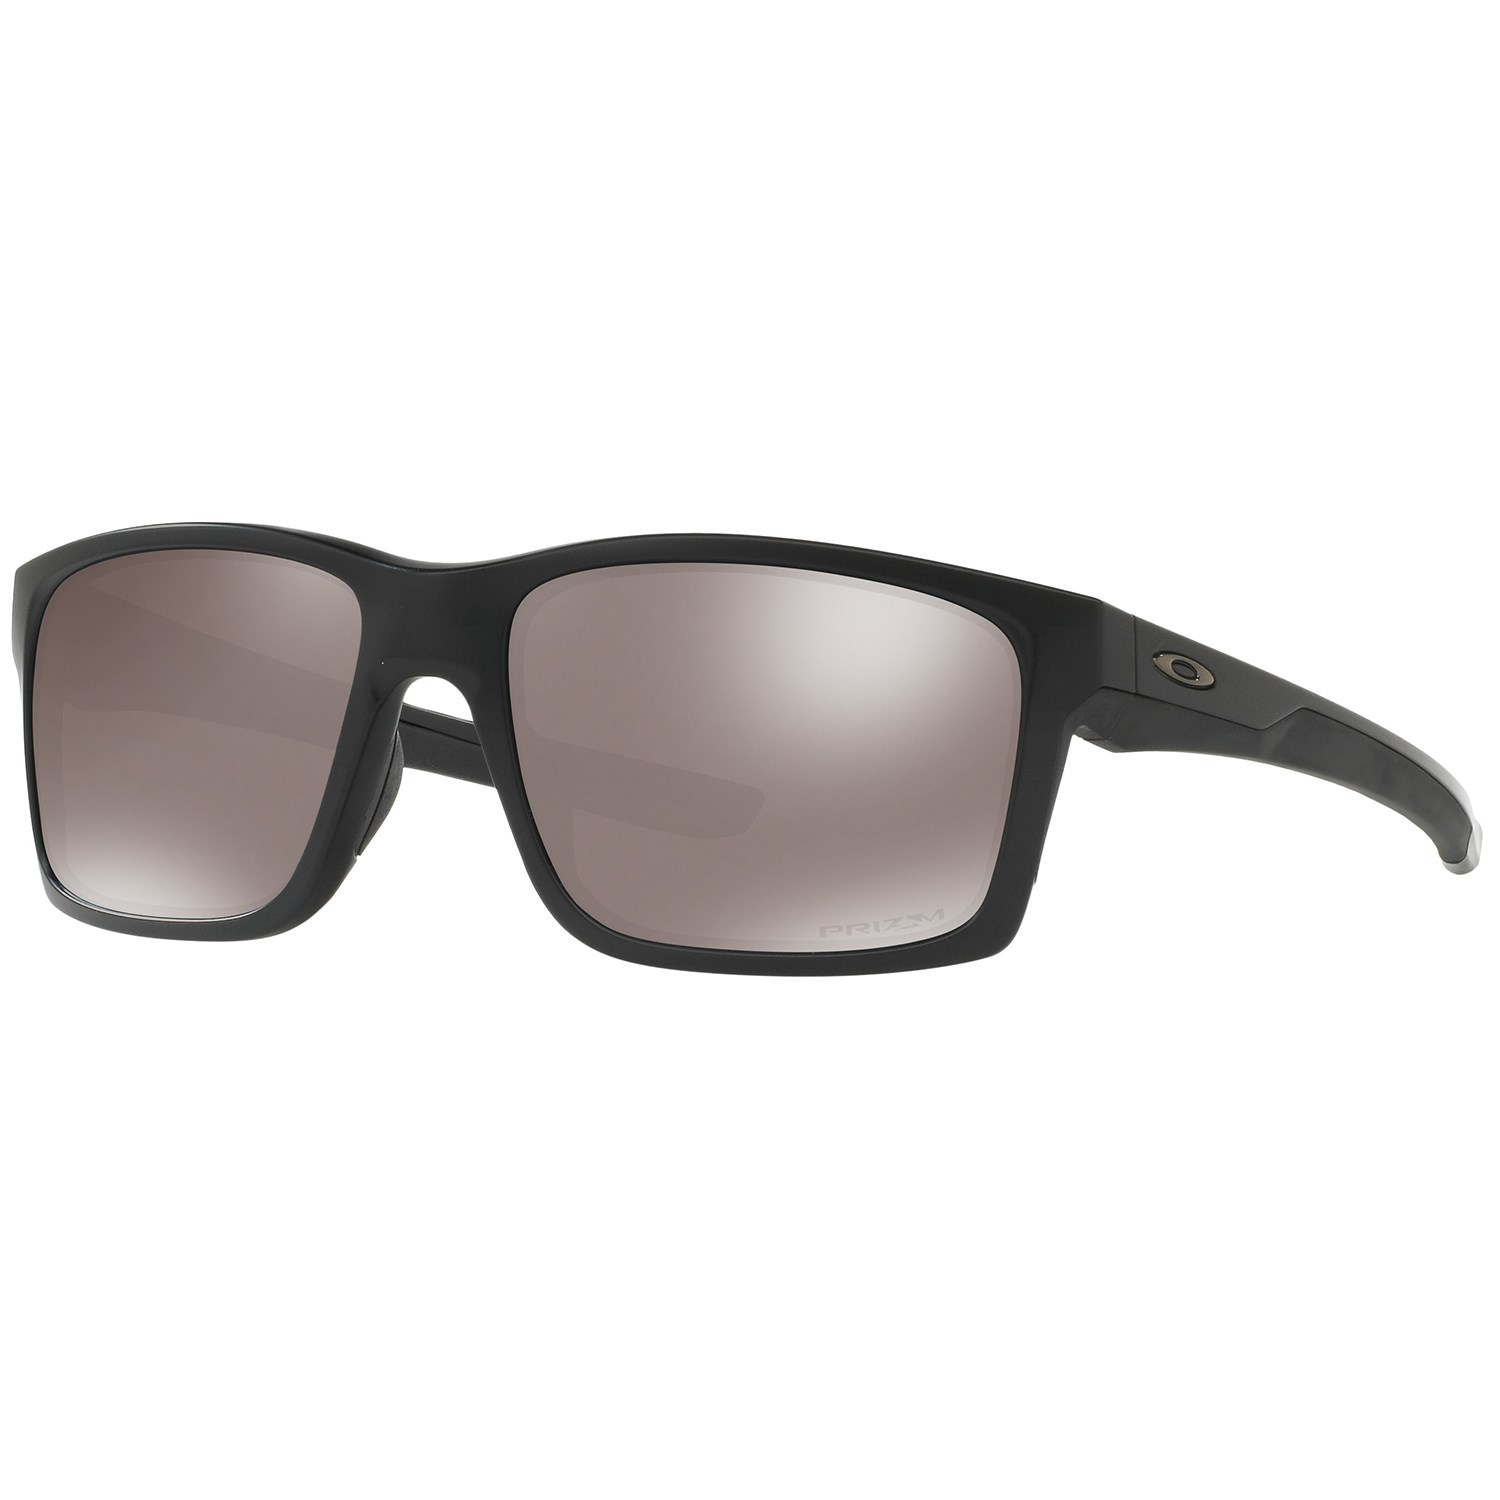 7106ae0845 Oakley Mainlink Sunglasses